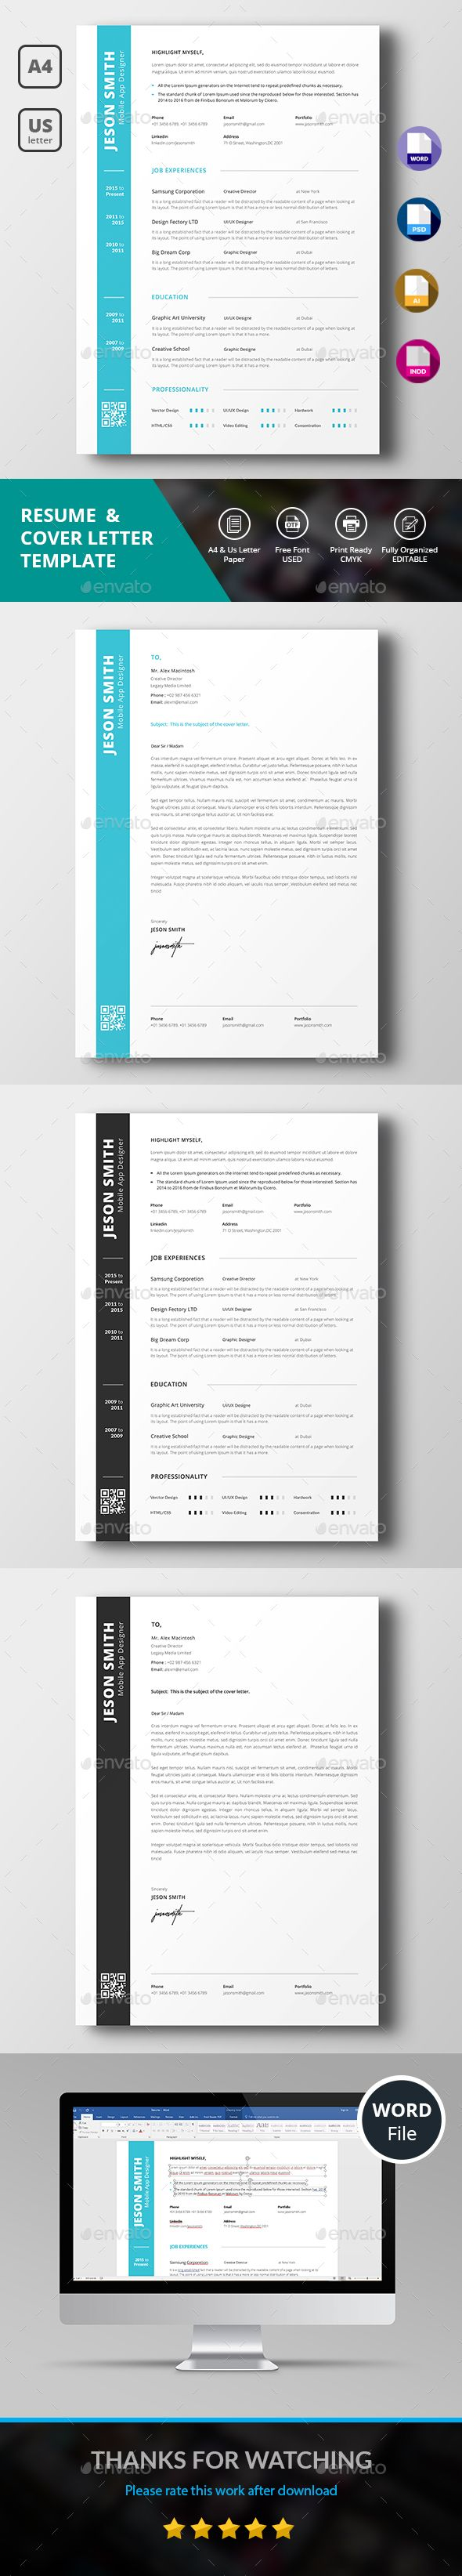 Simple Resume by DesignsTemplate This is Resume & Cover Letter template . This template download contains 300 dpi print-ready CMYK psd files. All main elements are